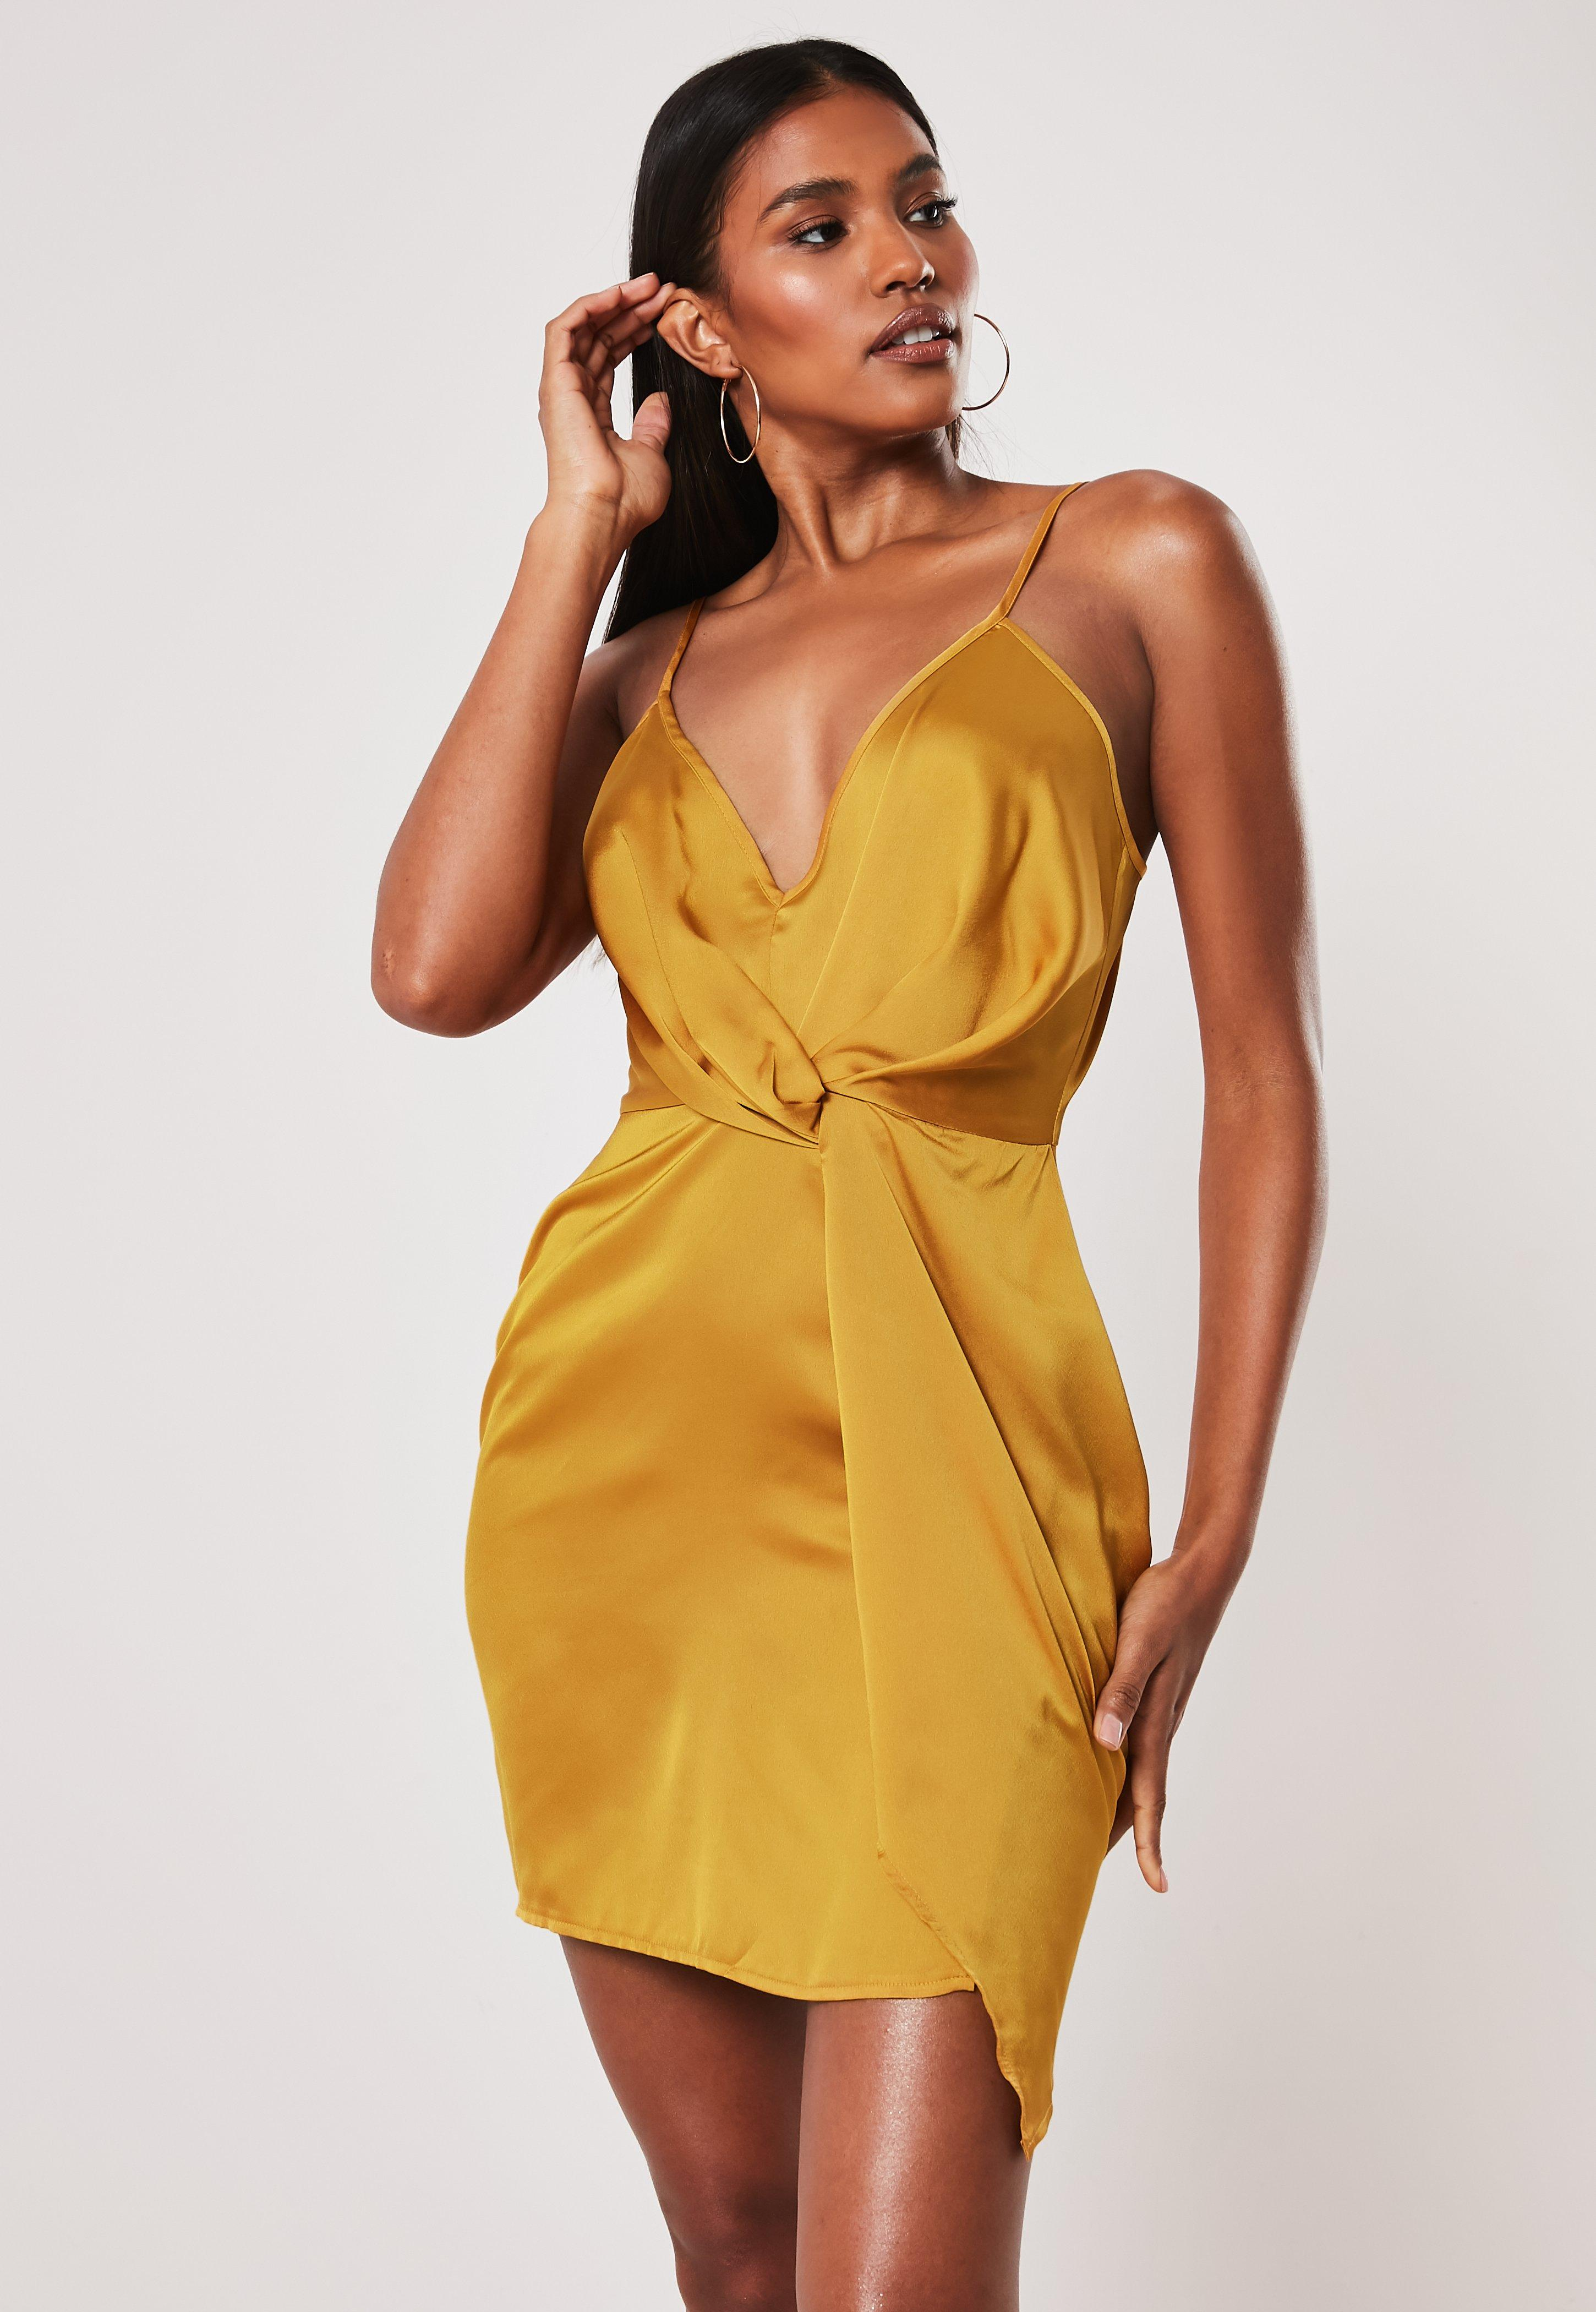 c2b7a469 Plunge Dresses | V Neck & Low Cut Dresses - Missguided